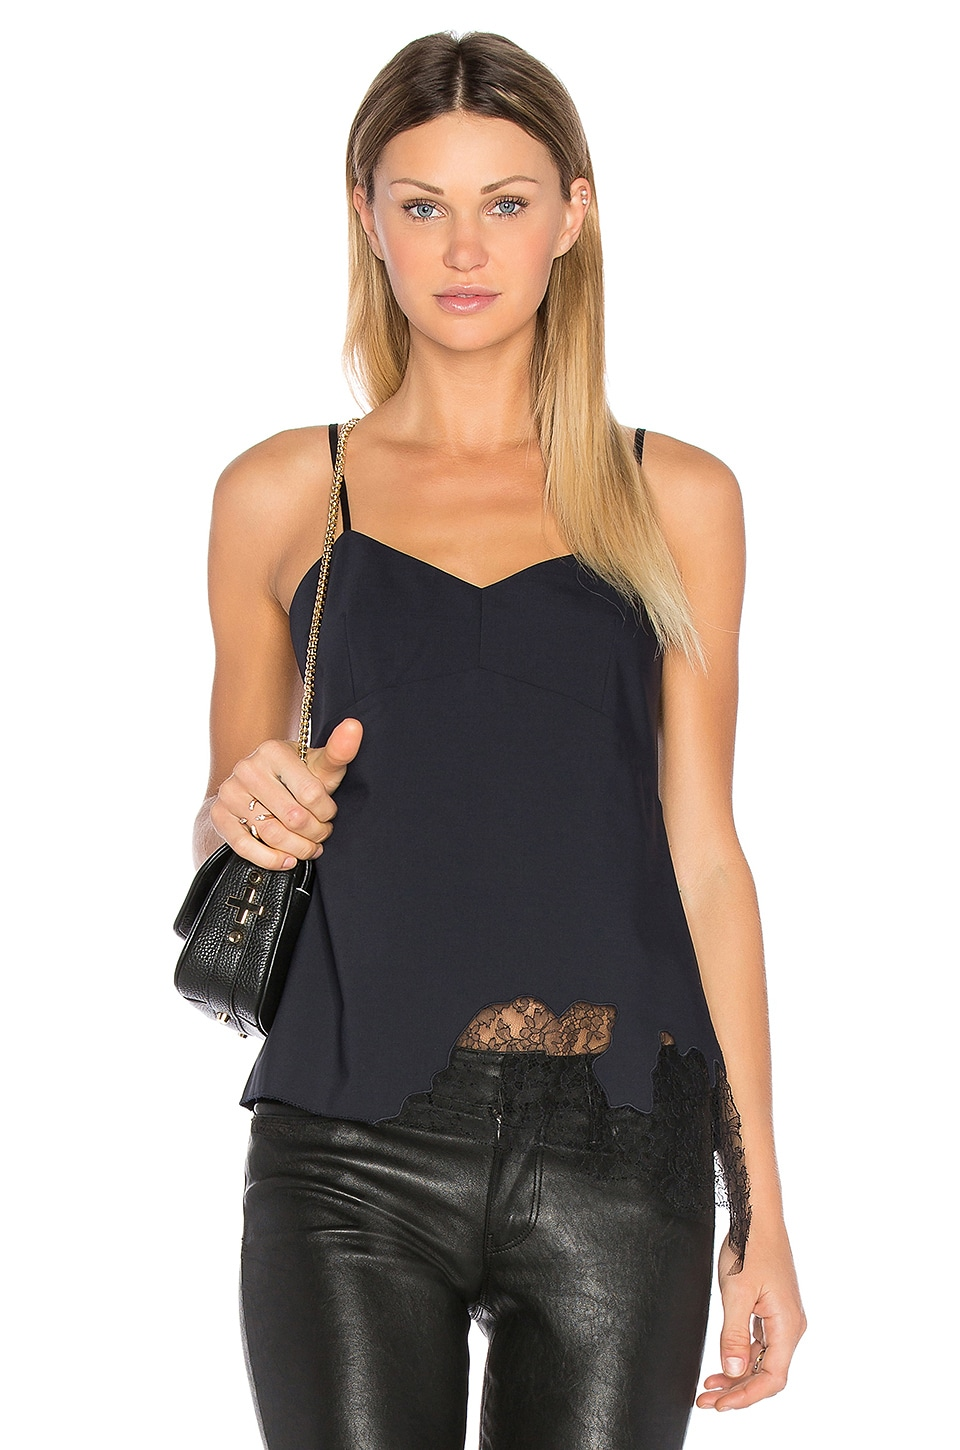 Lou Lou Applique Cami by Tibi